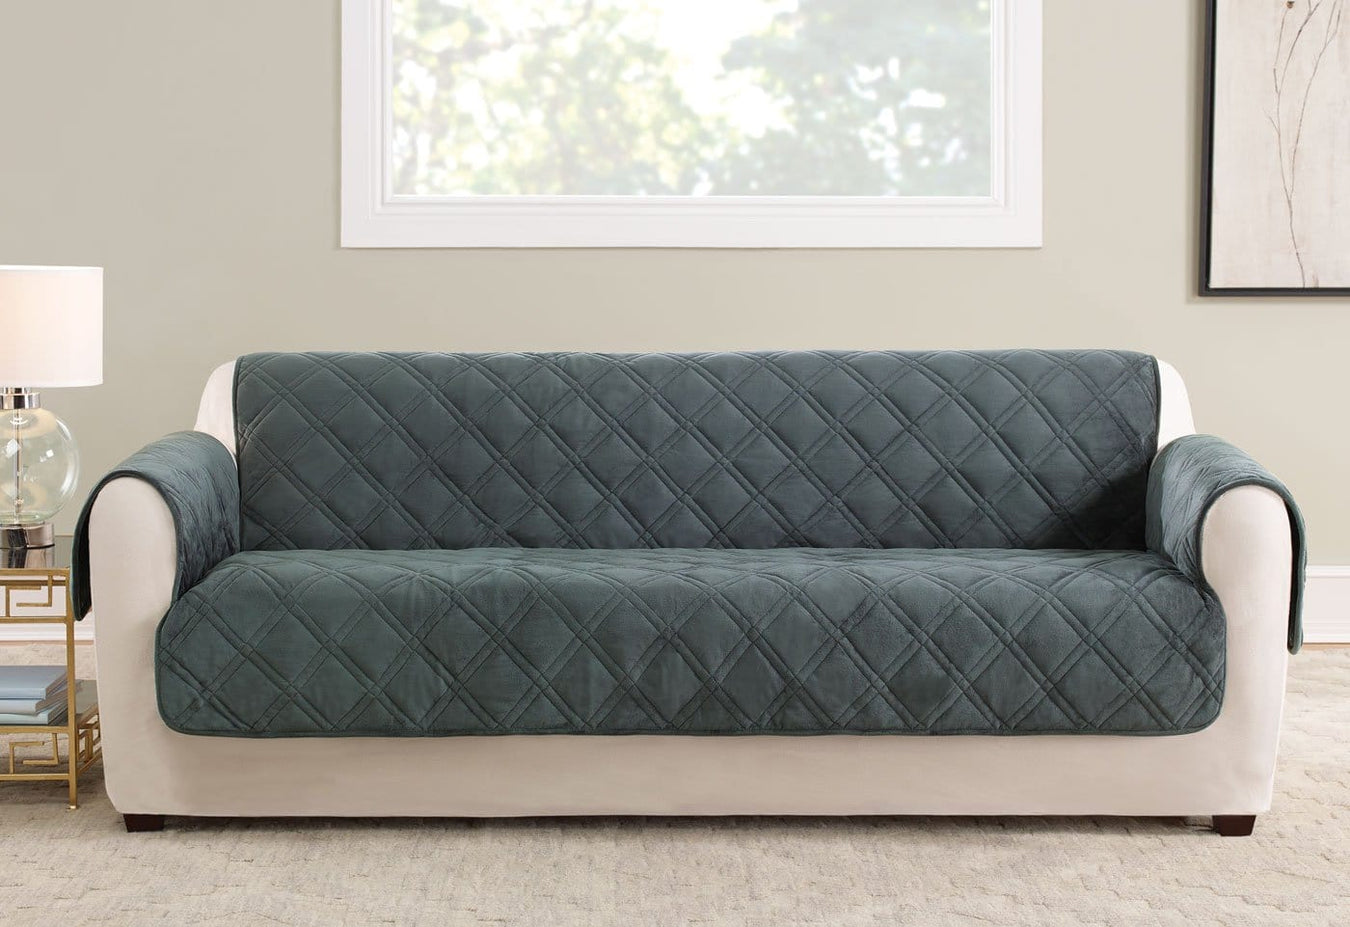 Triple Protection Sofa Furniture Cover